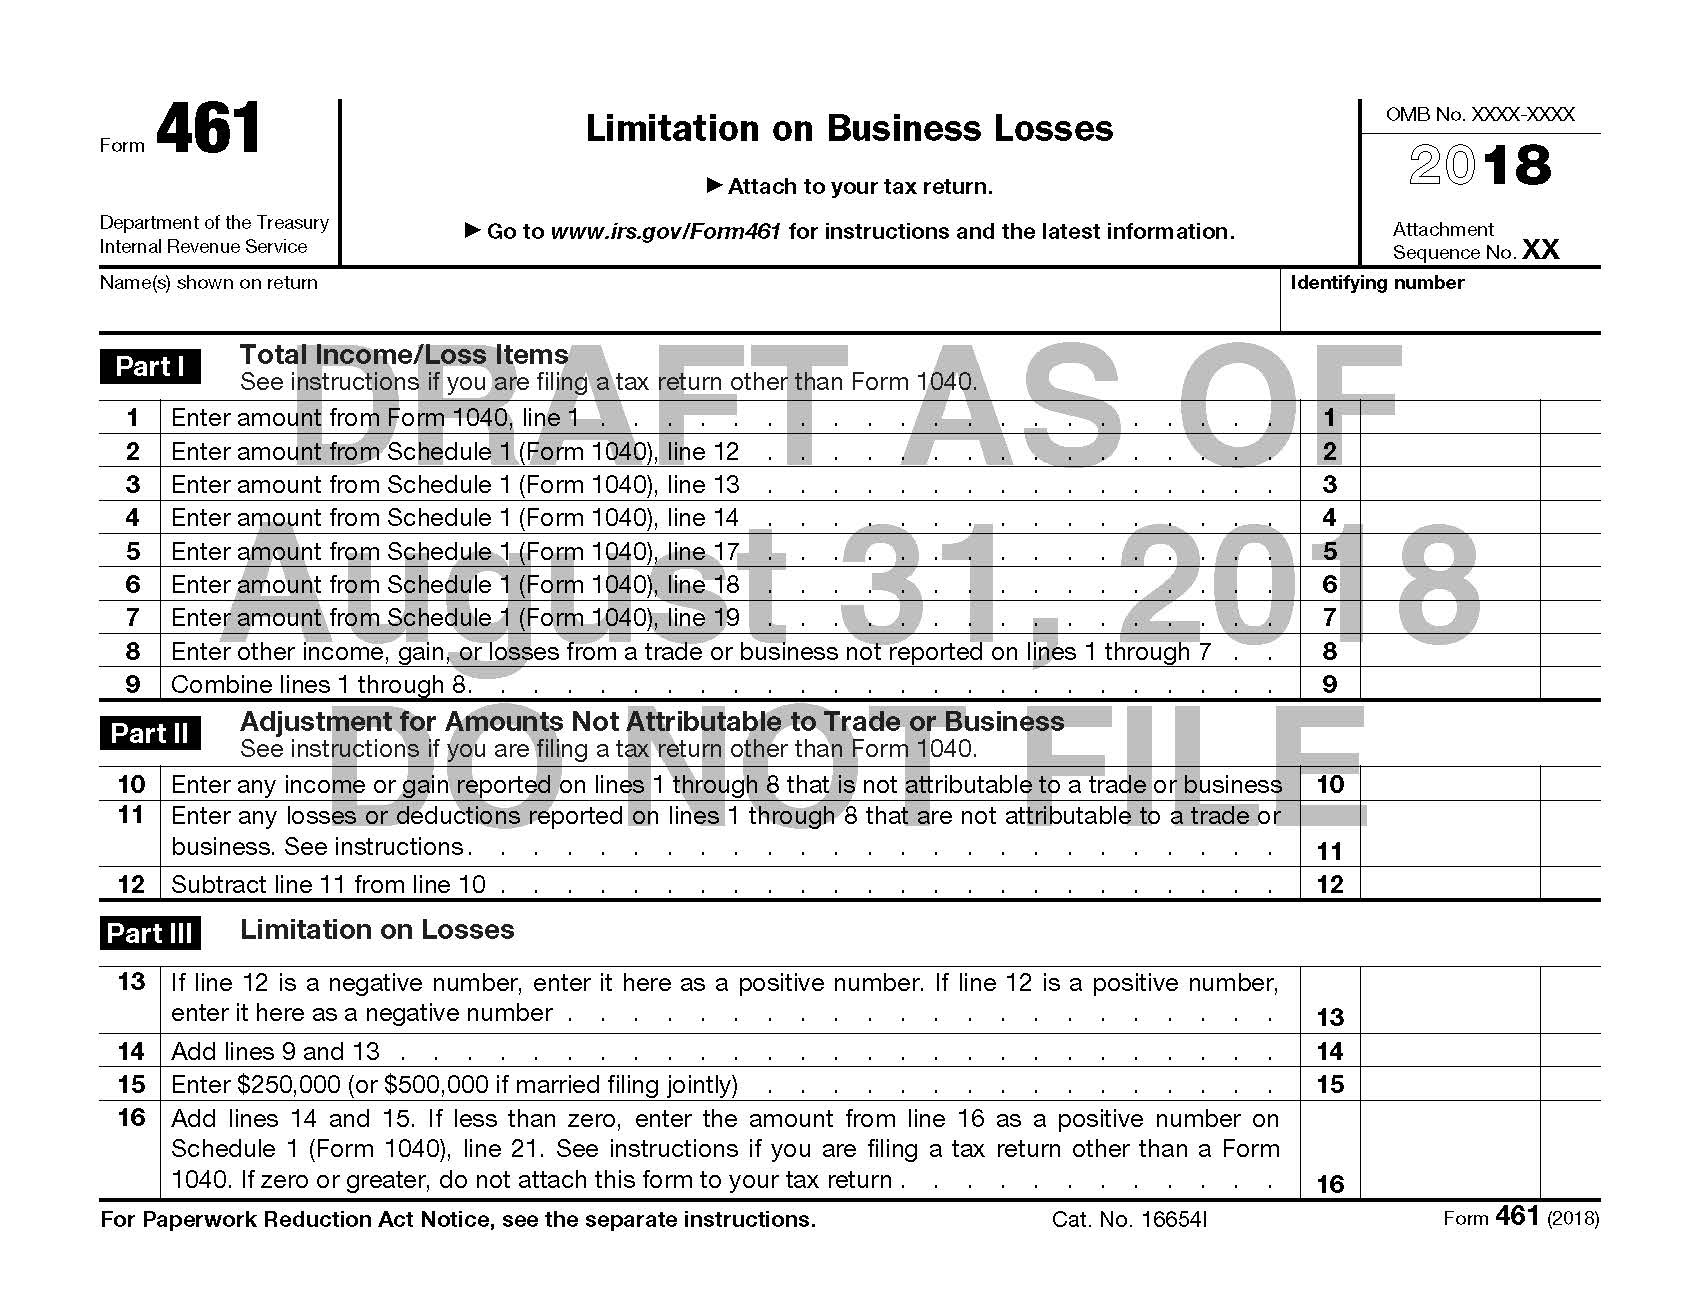 Draft Form 461 (2018), August 2018